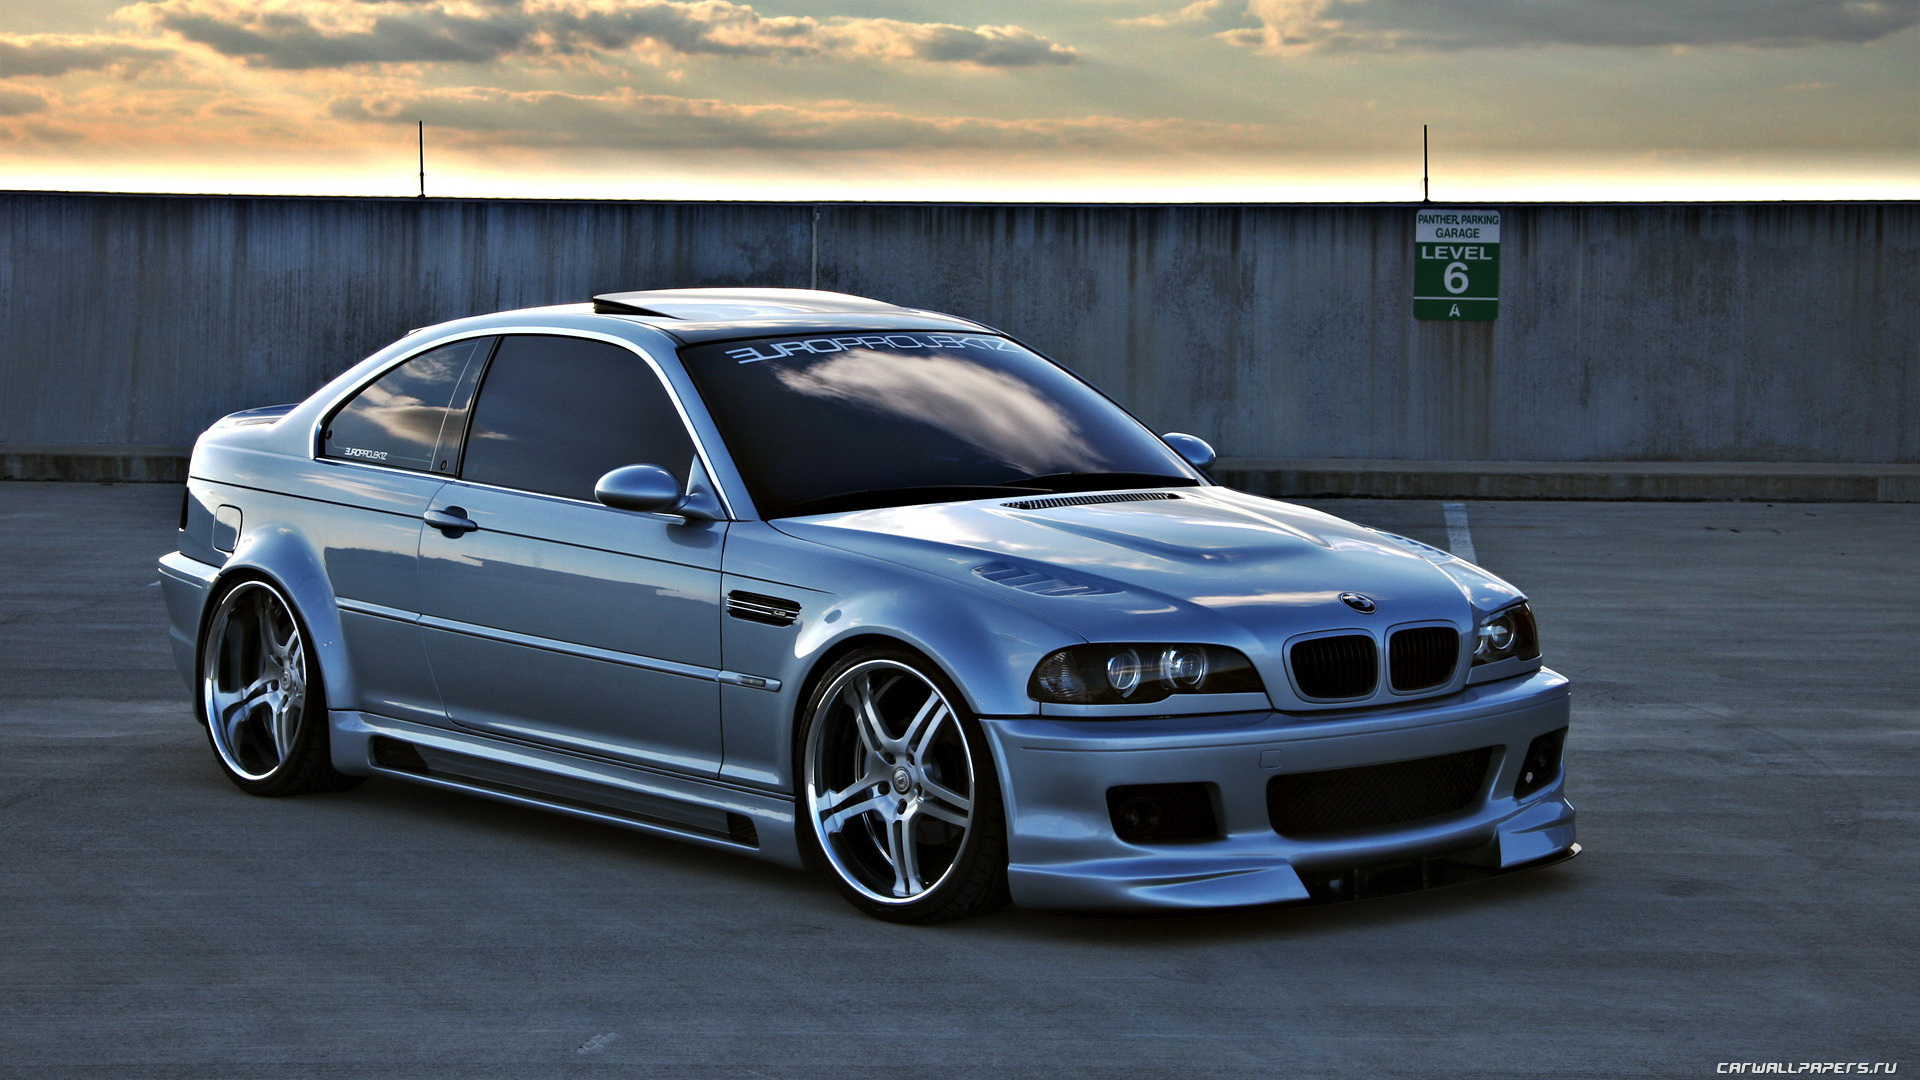 Tuner Car Wallpapers 26 Wallpapers Adorable Wallpapers